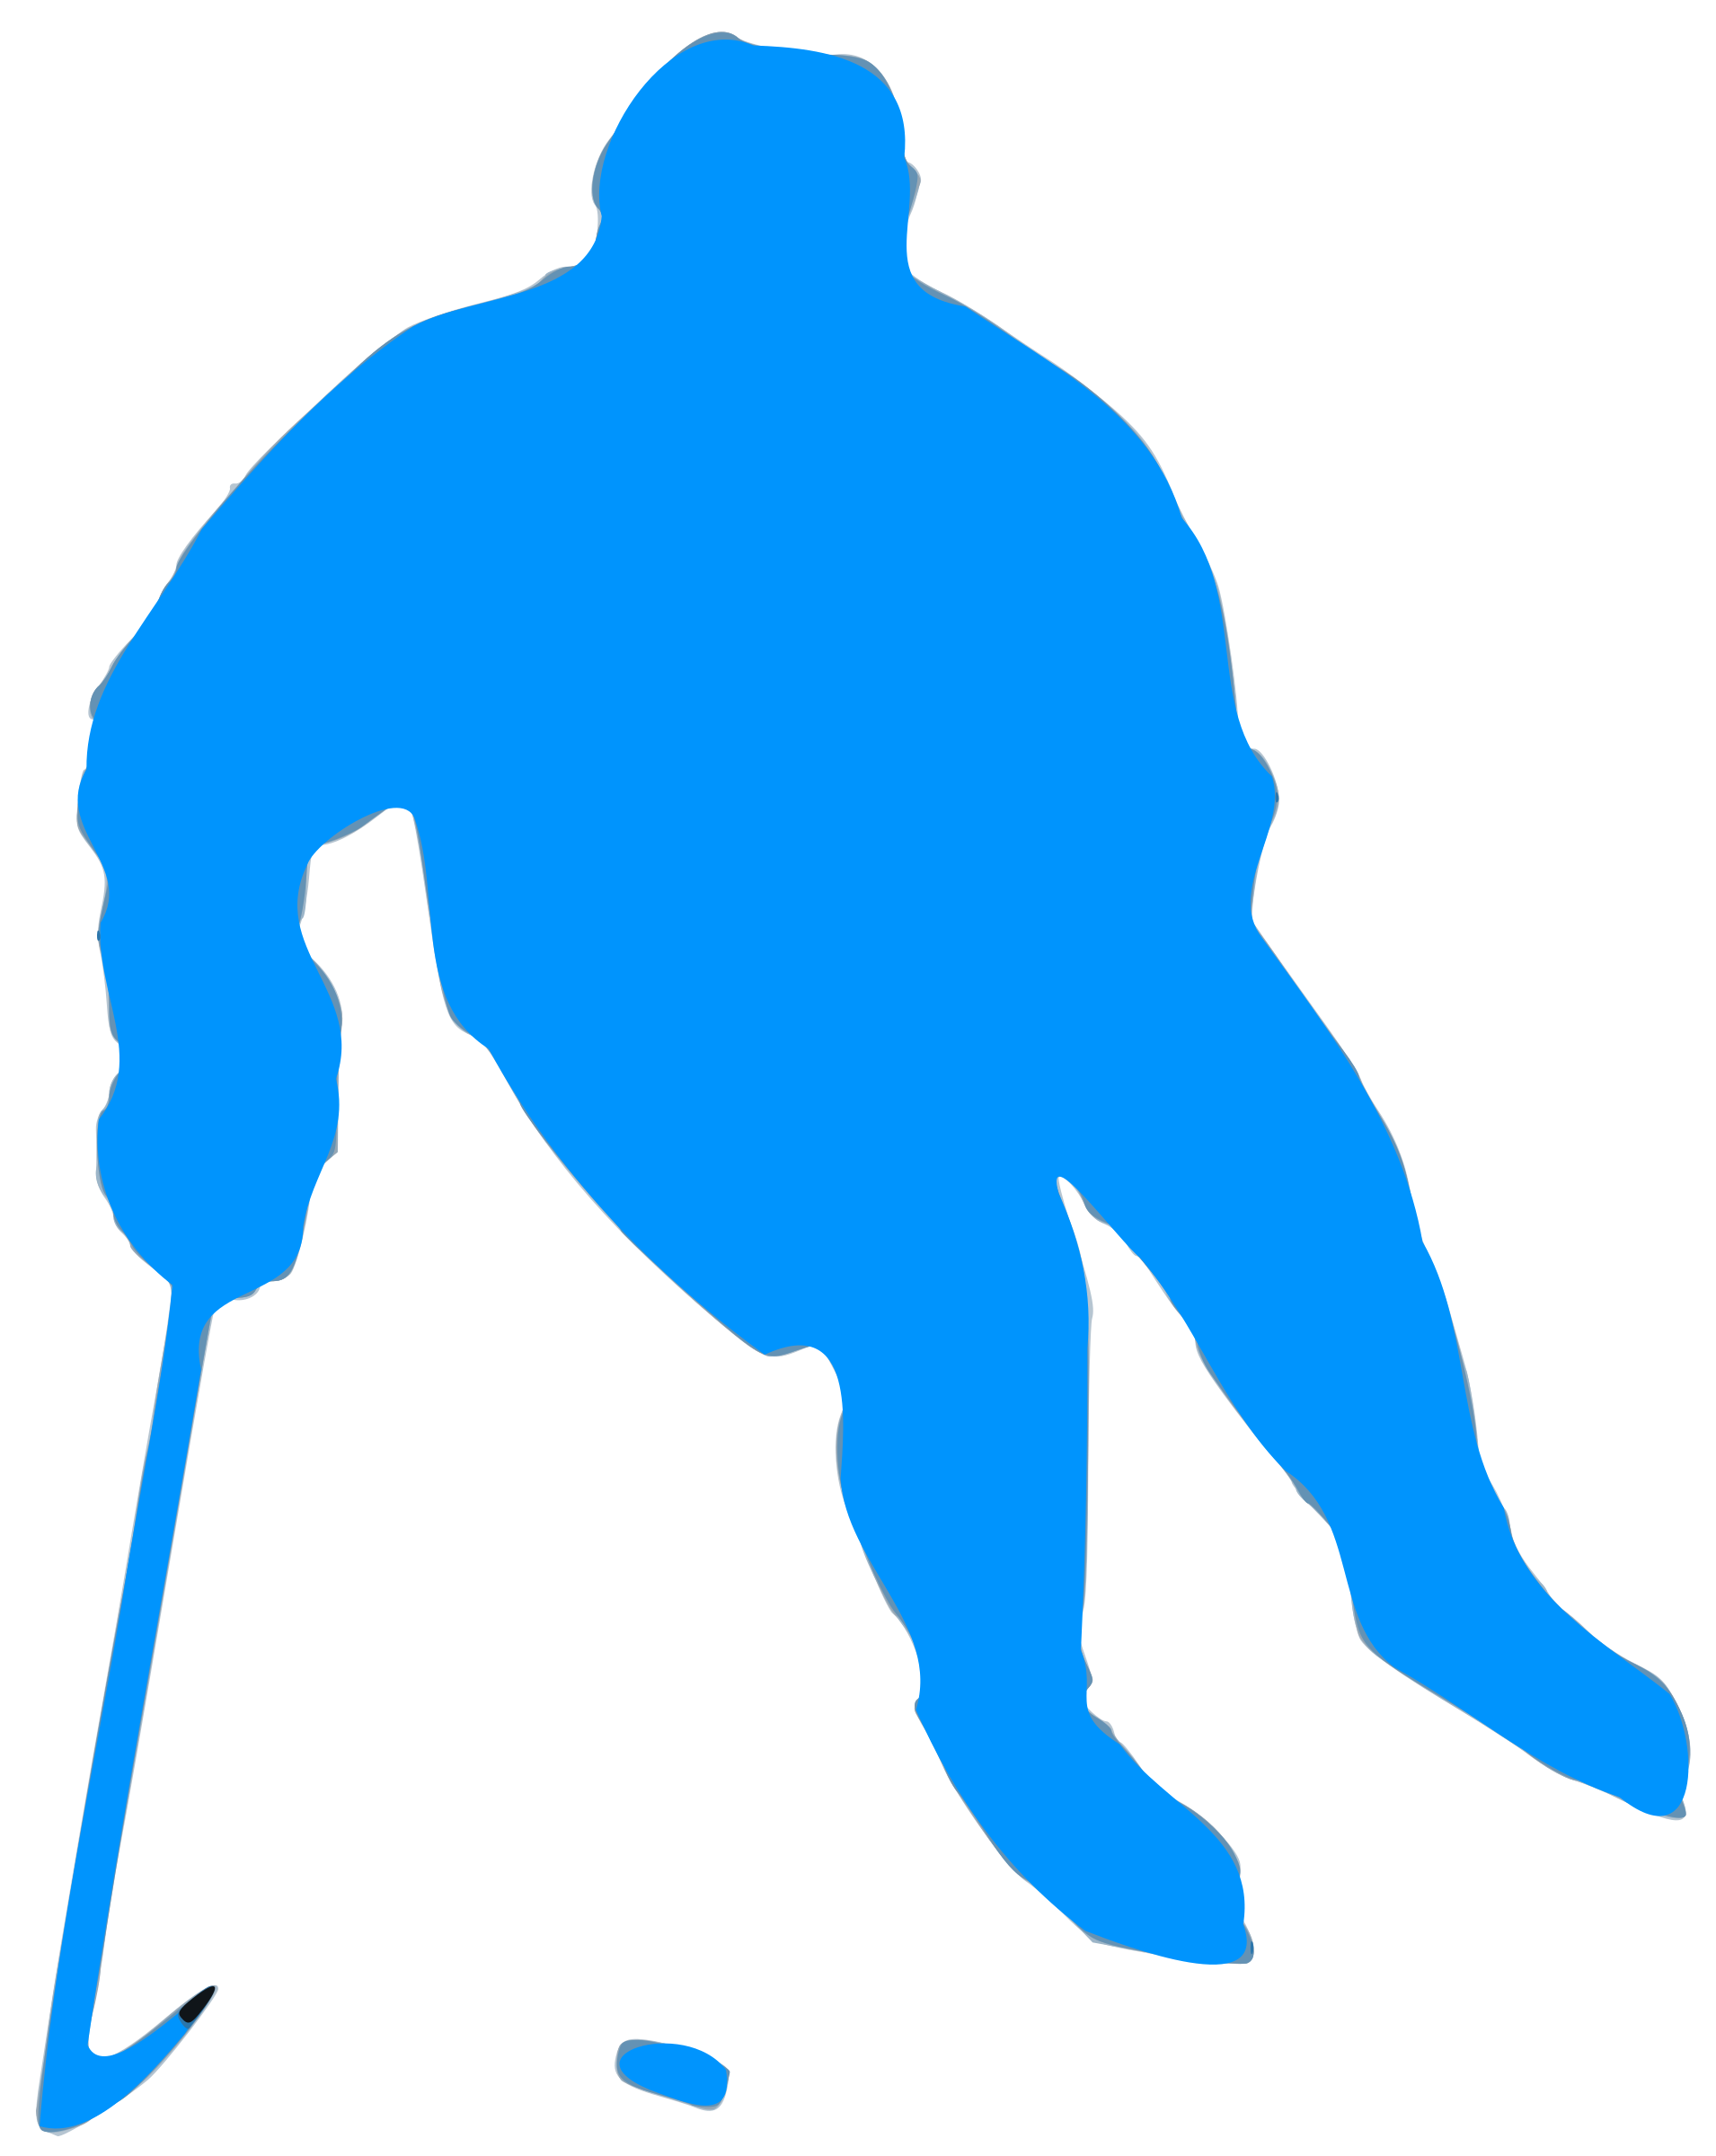 Hockey clipart silhouette. Icons png free and